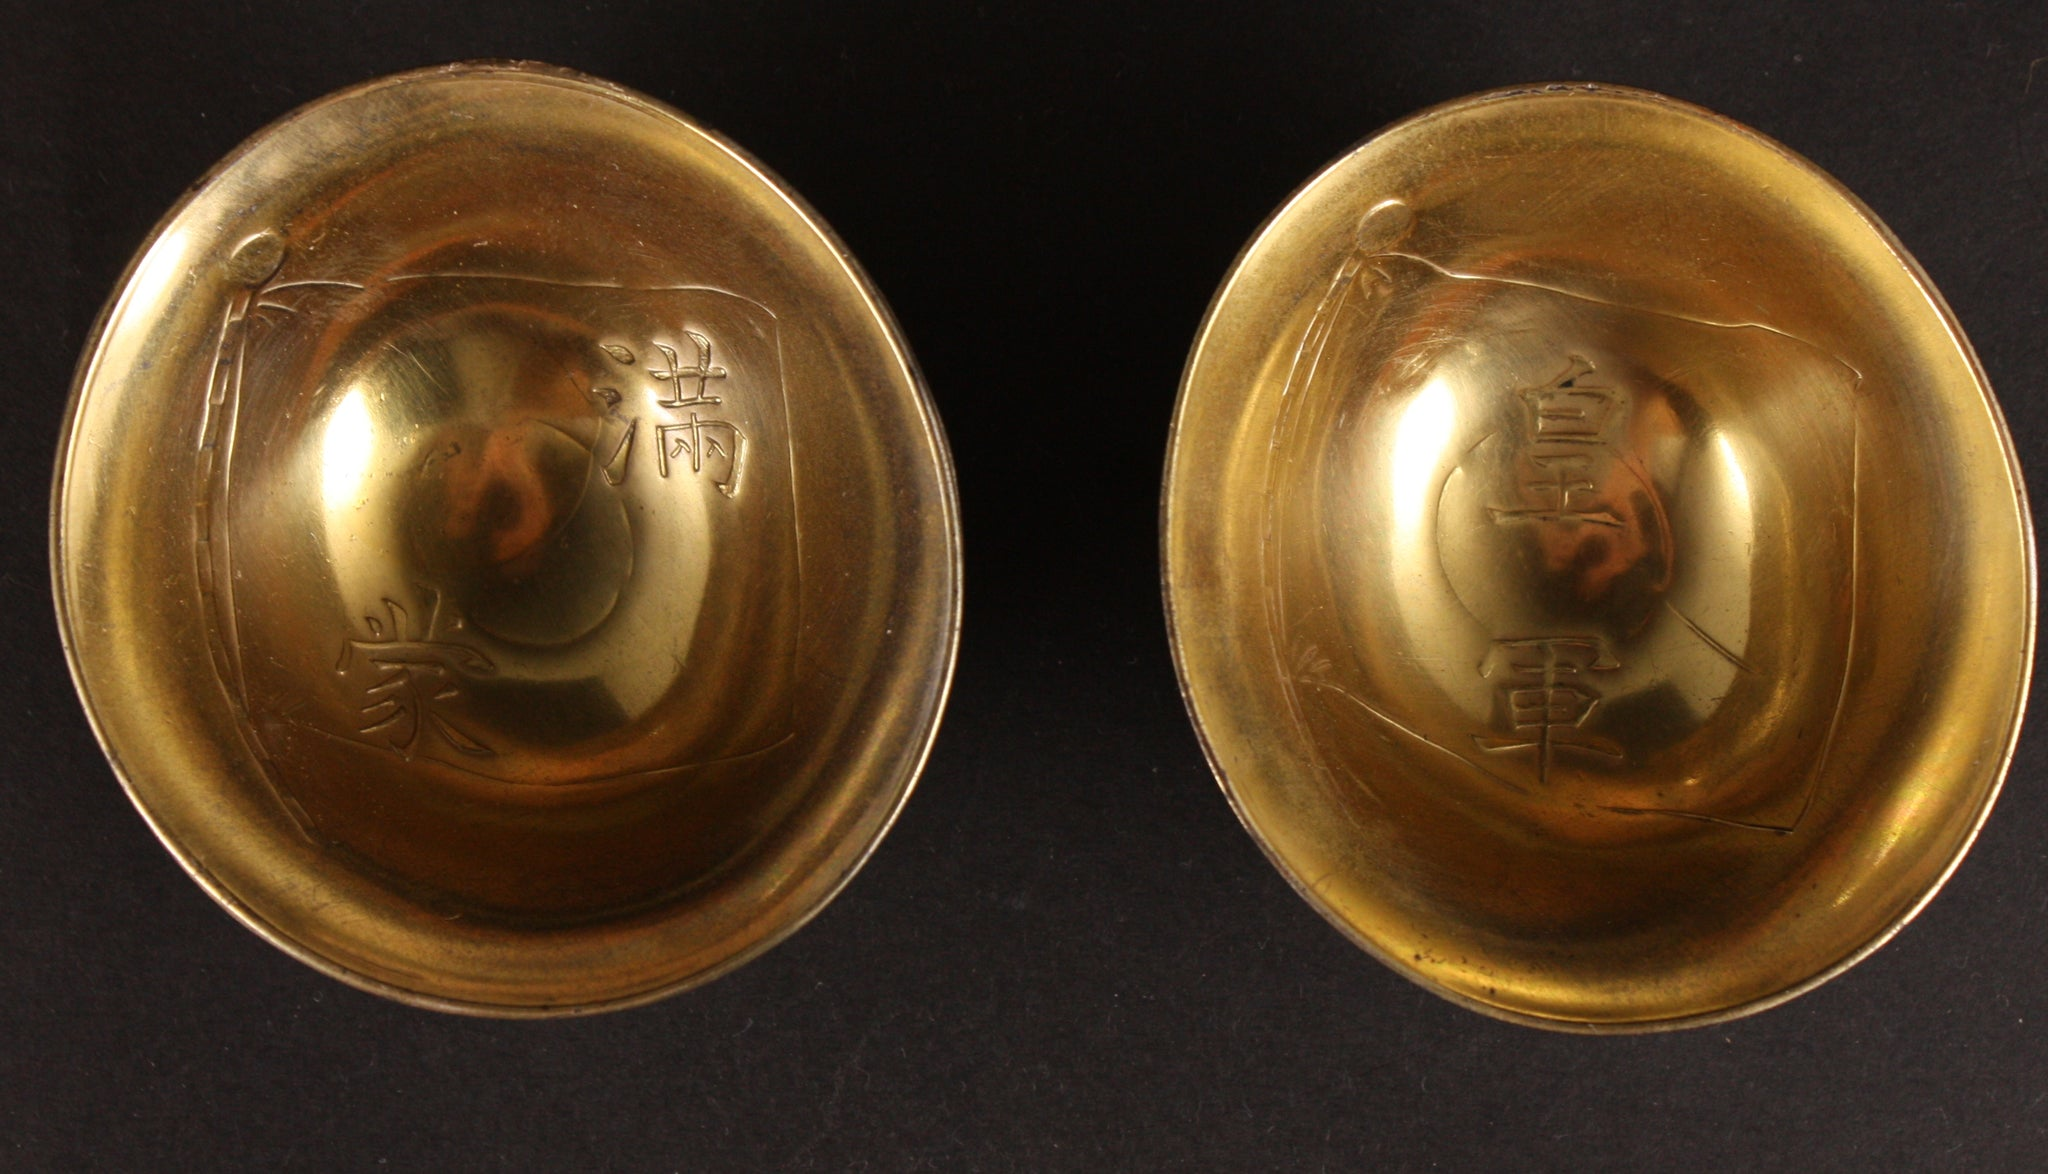 Antique Japanese Military Pair of Helmet Manchuria Mongolia Metal Sake Cups